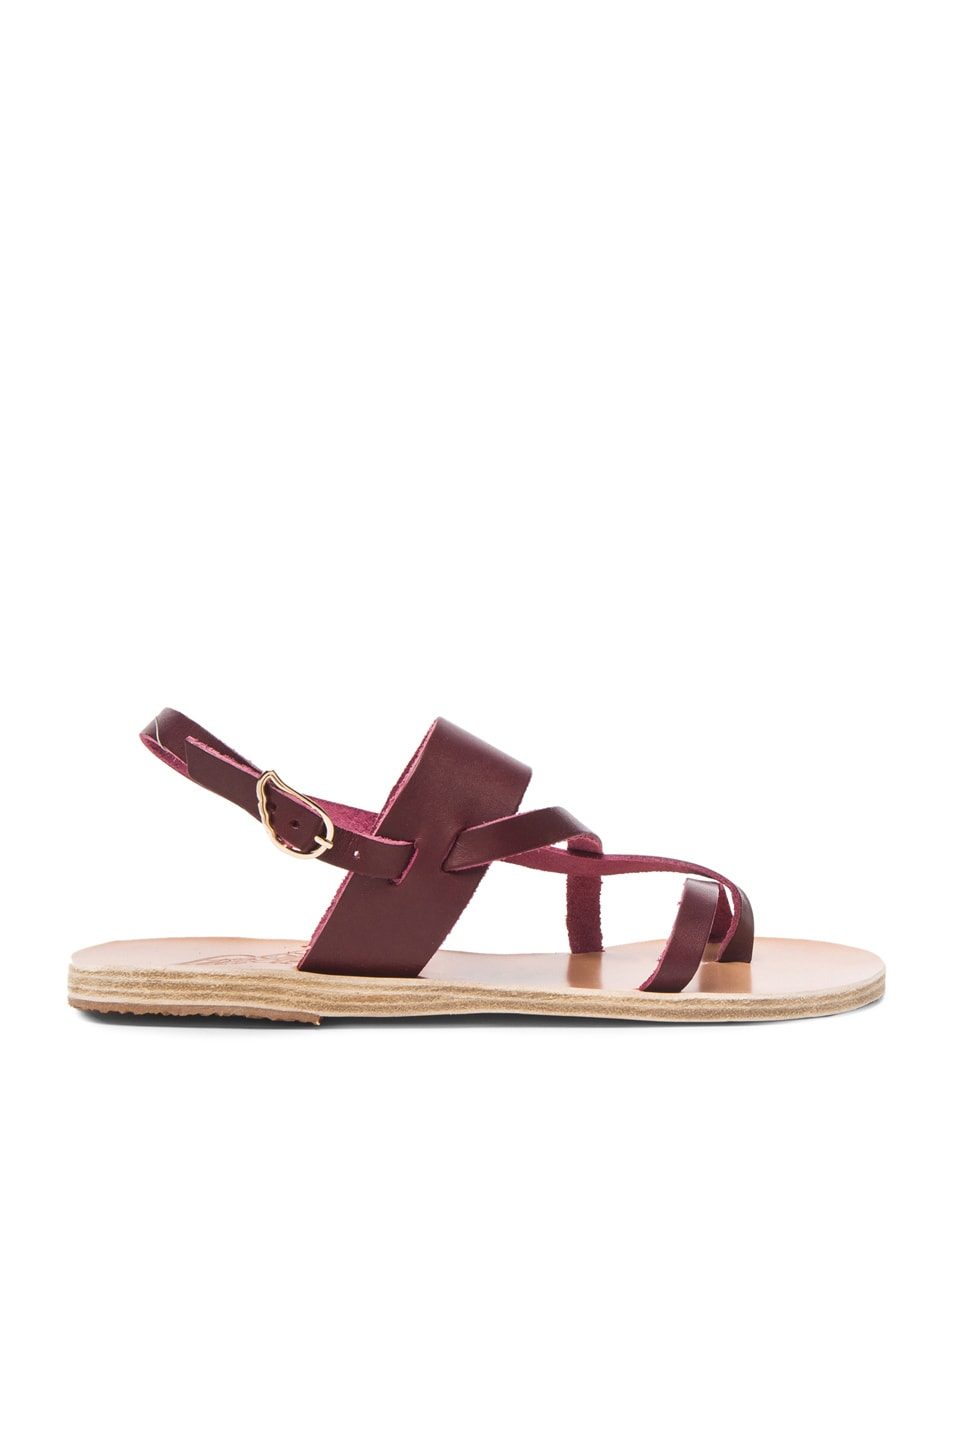 Image 1 of Ancient Greek Sandals Alethea Leather Sandals in Burgundy